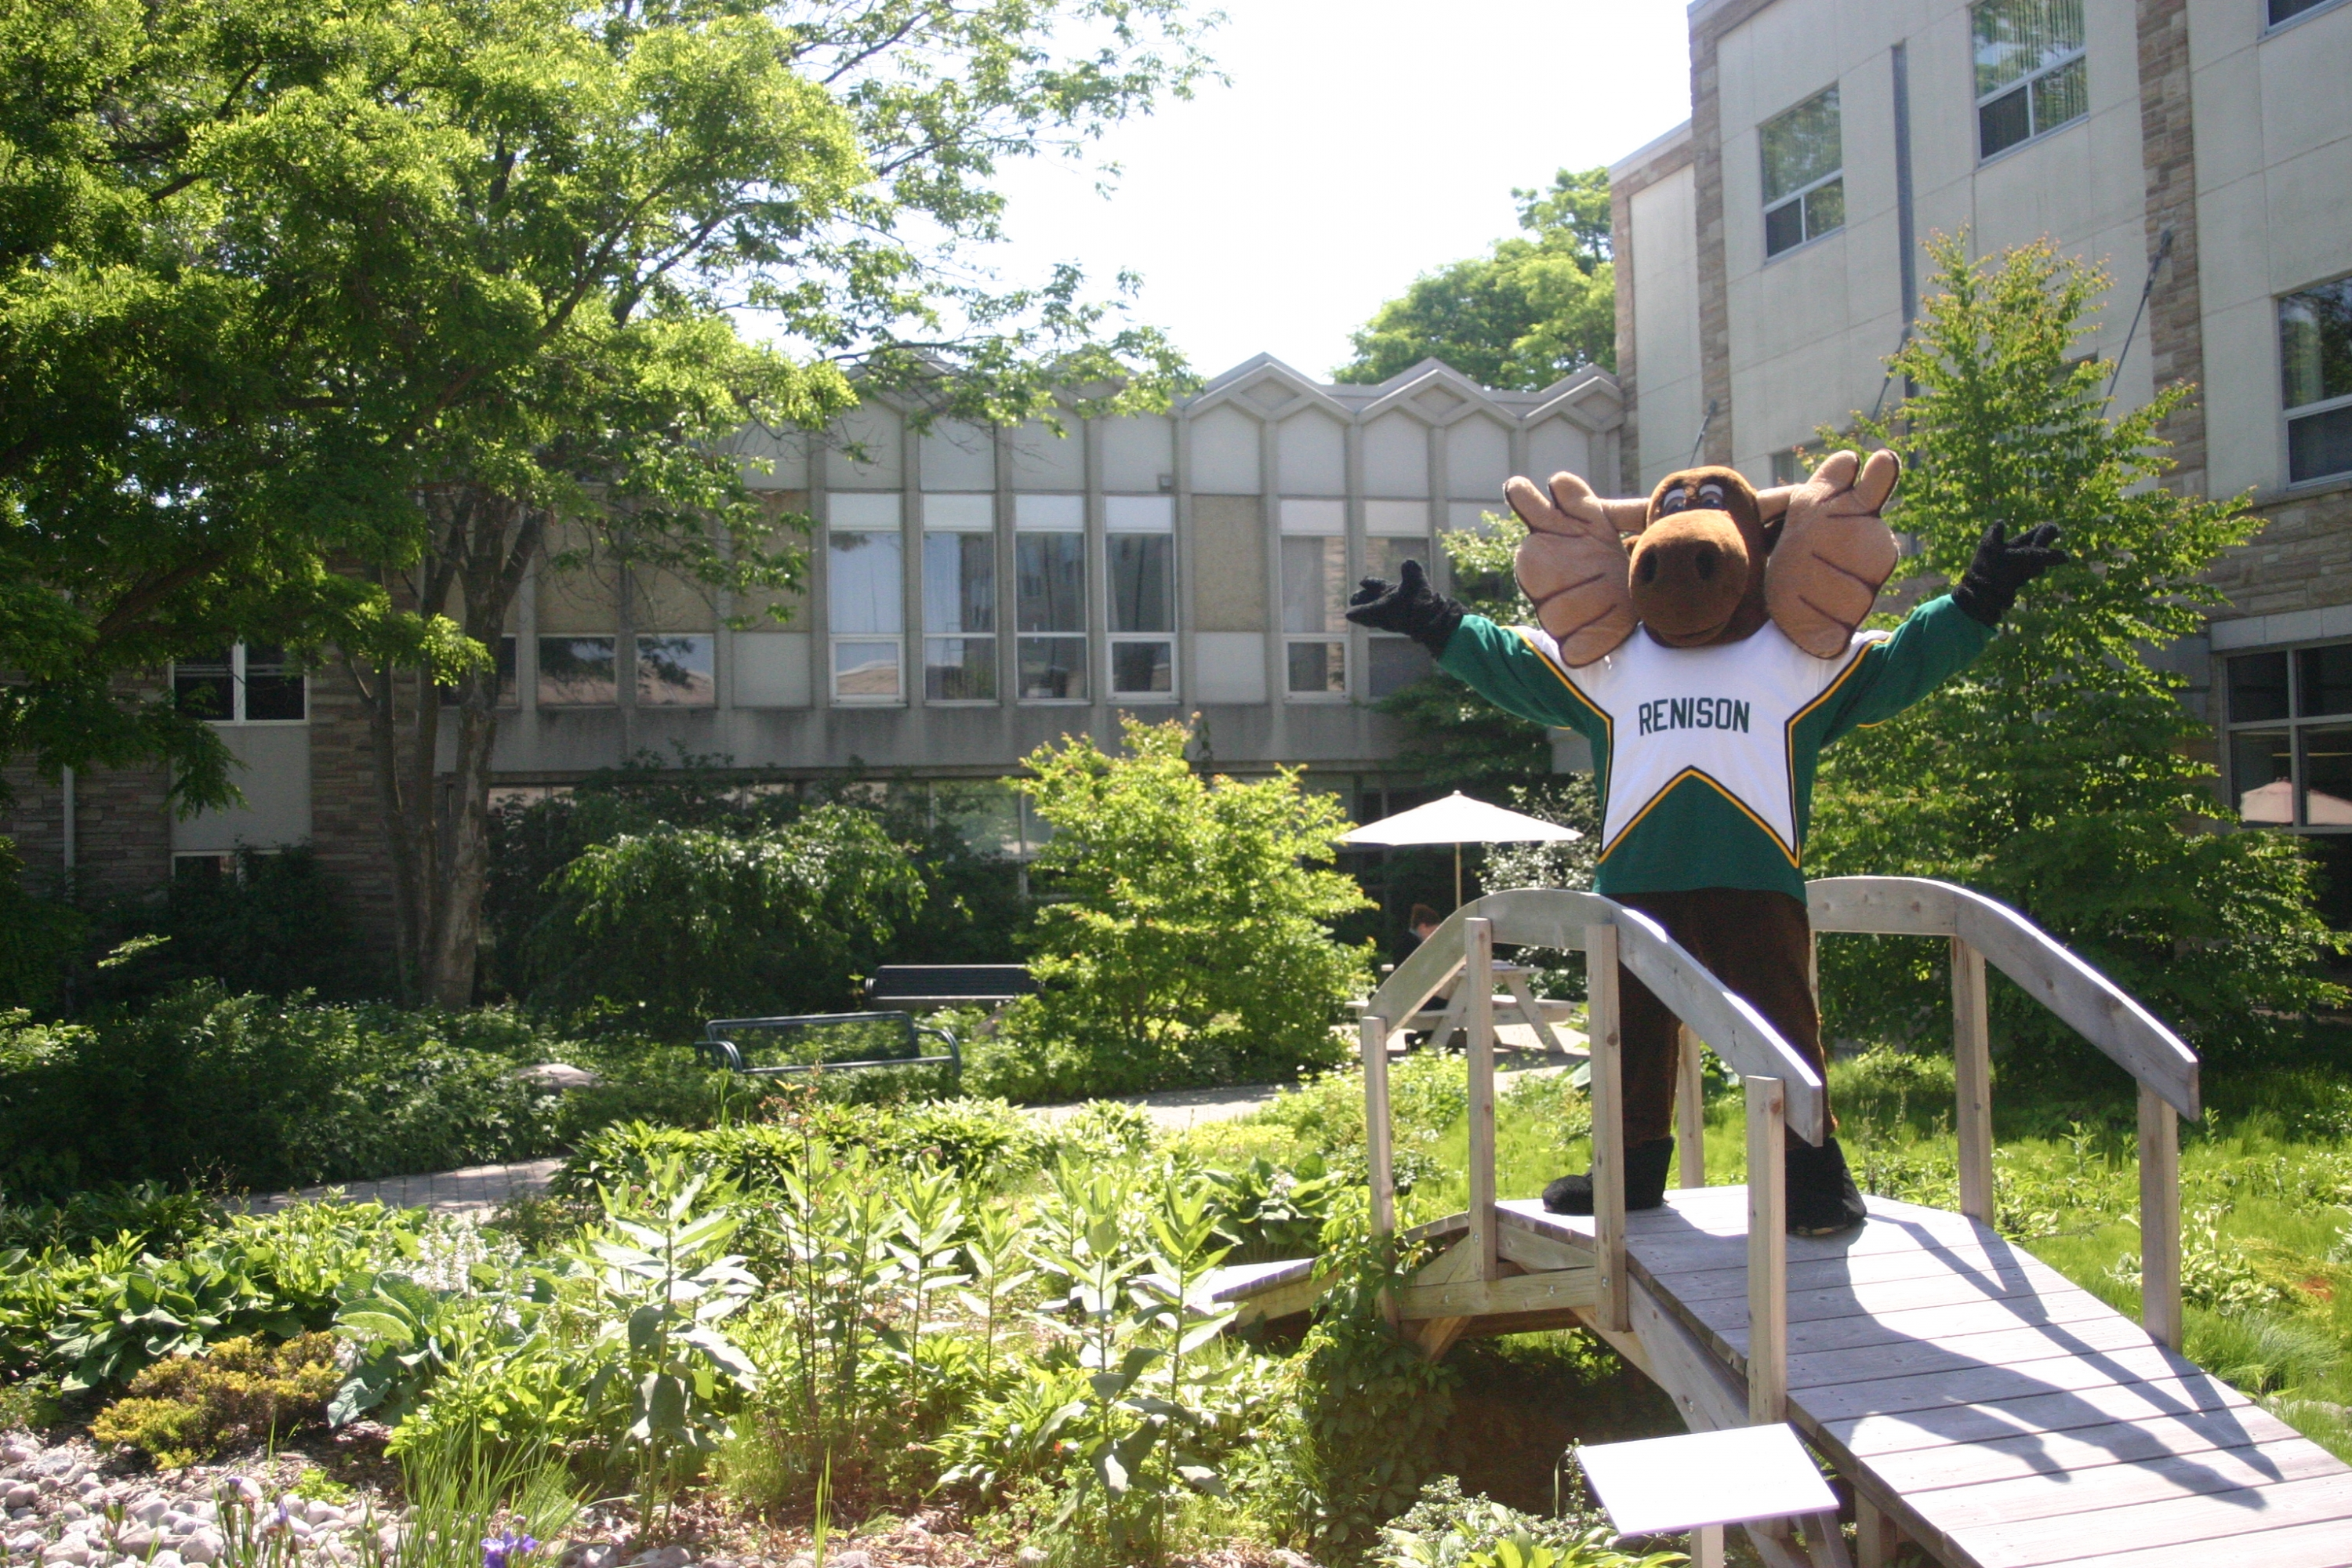 Reni moose welcoming you to Renison!